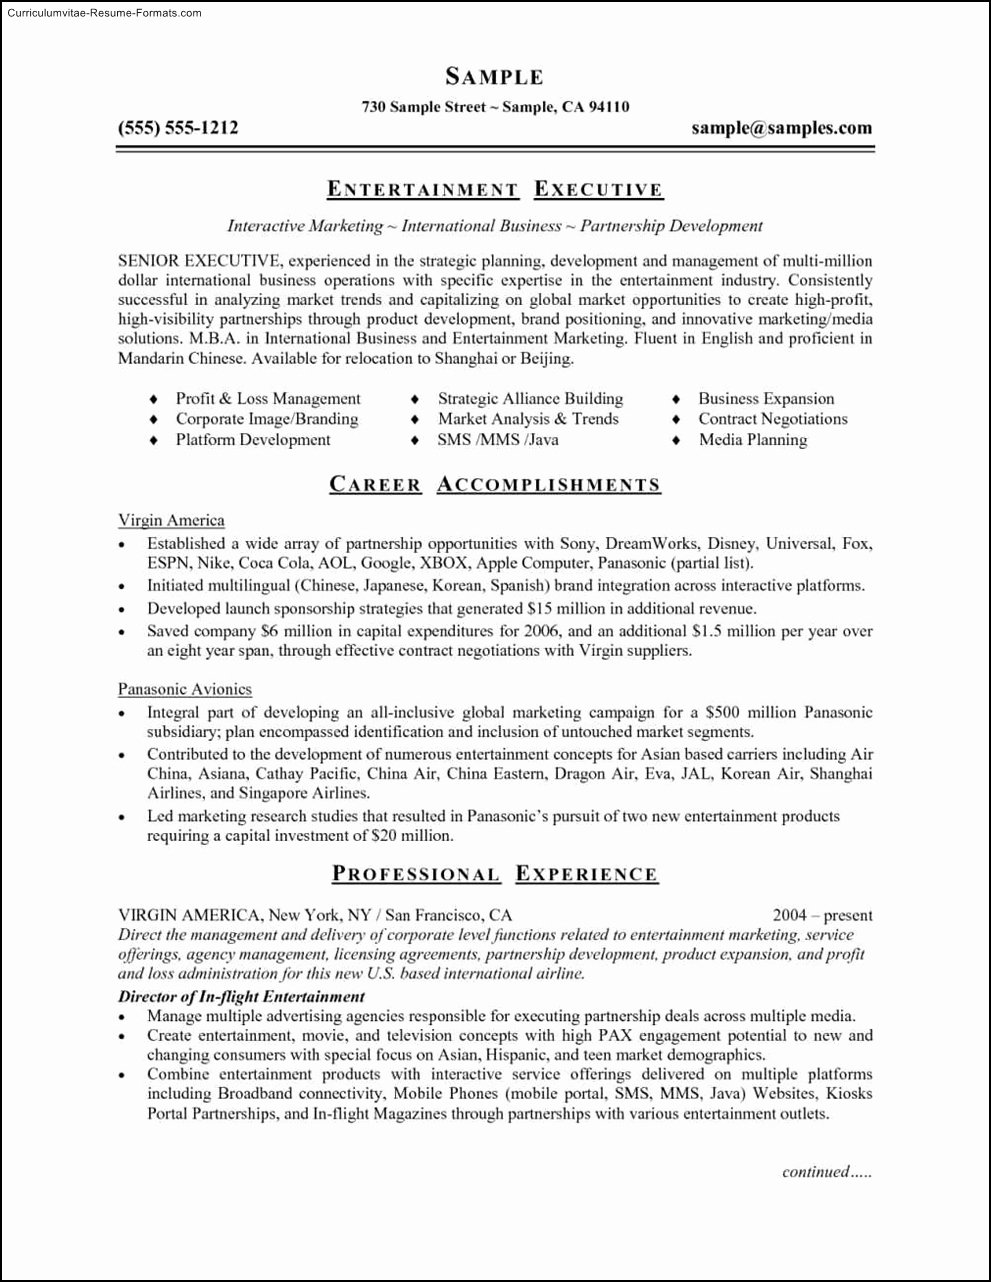 Microsoft Word Template Downloads Elegant Microsoft Word 2003 Resume Template Free Download